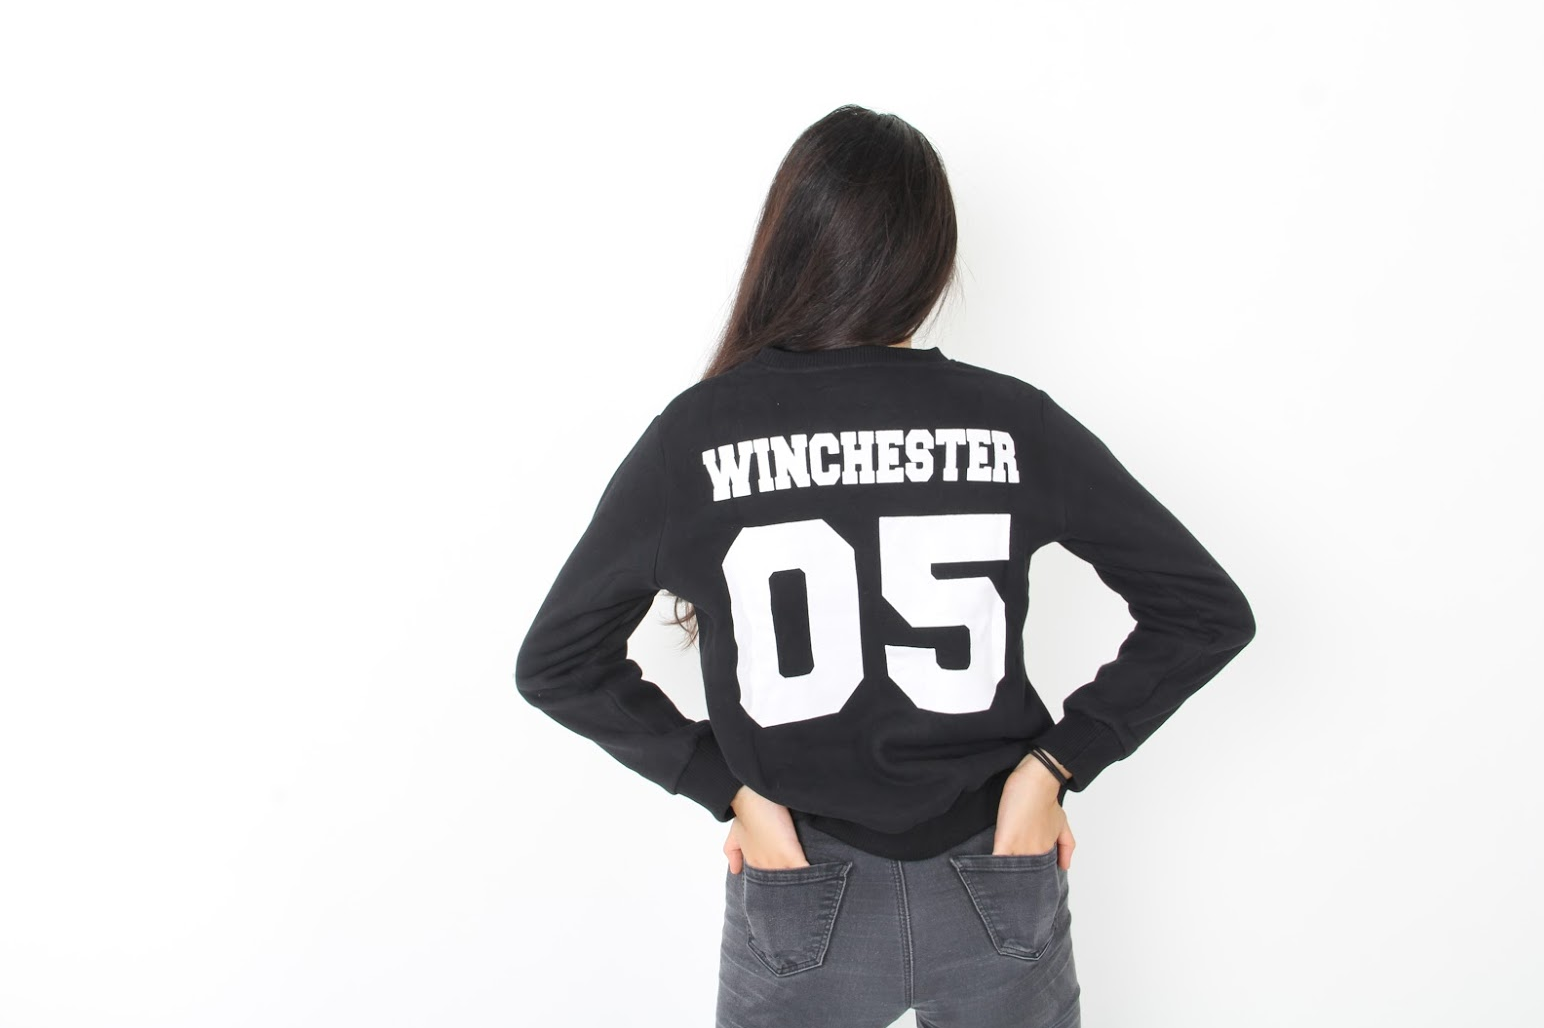 Winchester '05 Crewneck Sweater